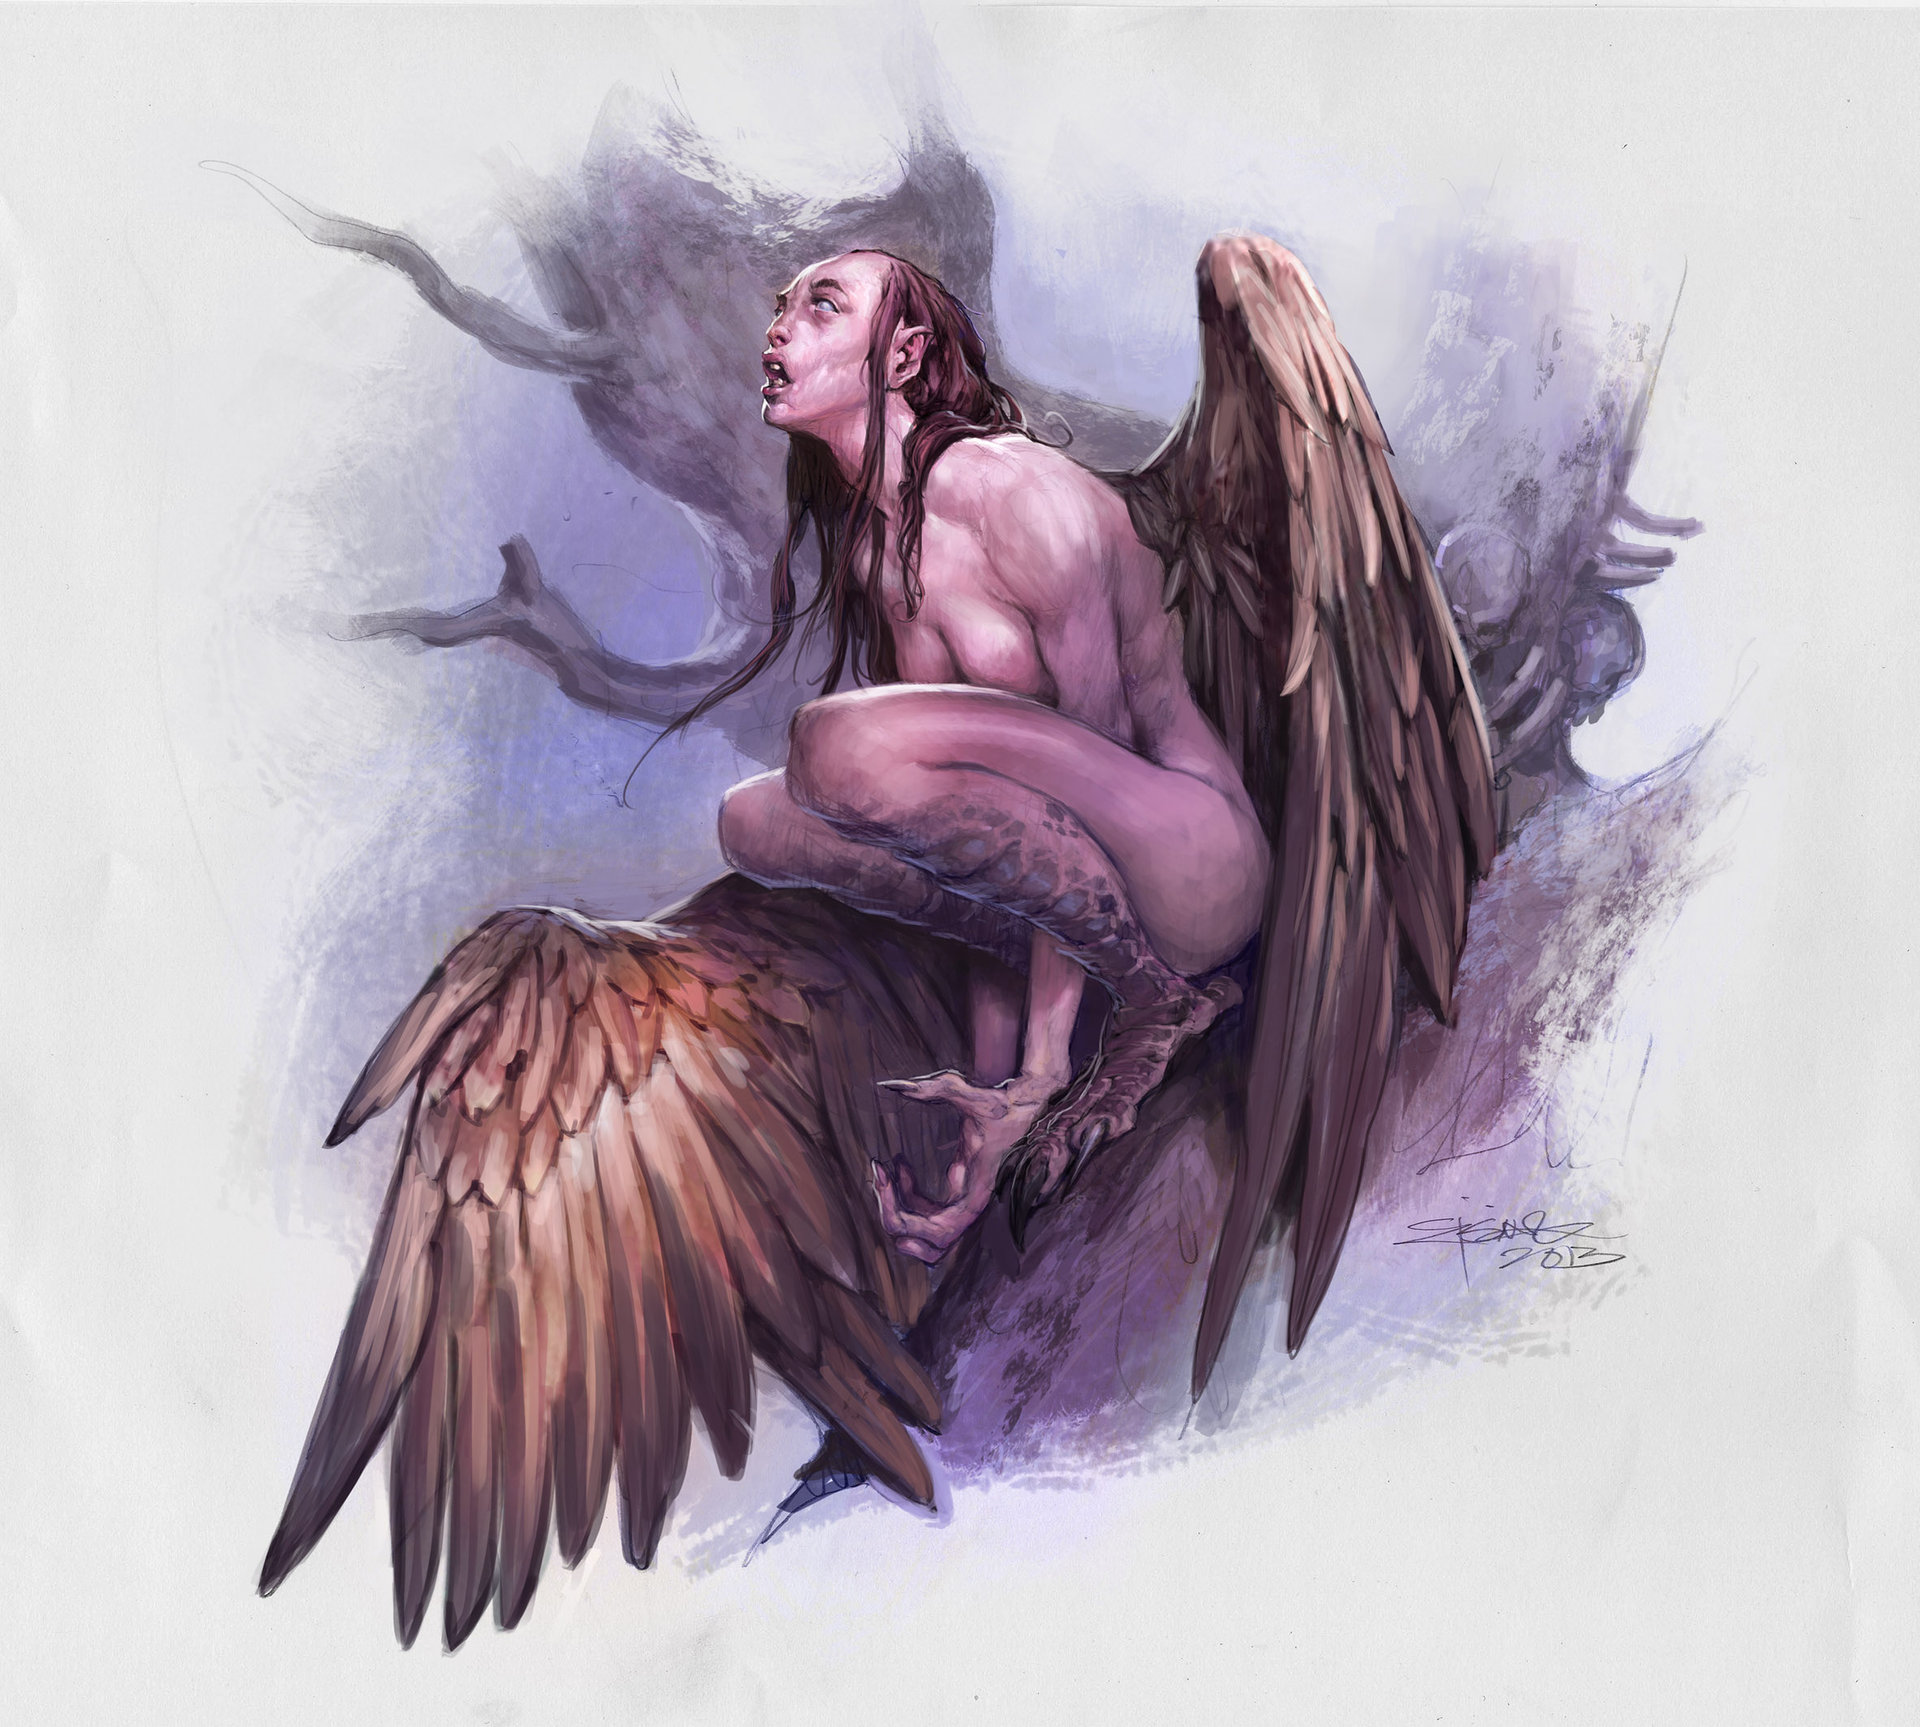 Jesper Ejsing Acrylic Painting Harpy DnD5E monster Manual illustration